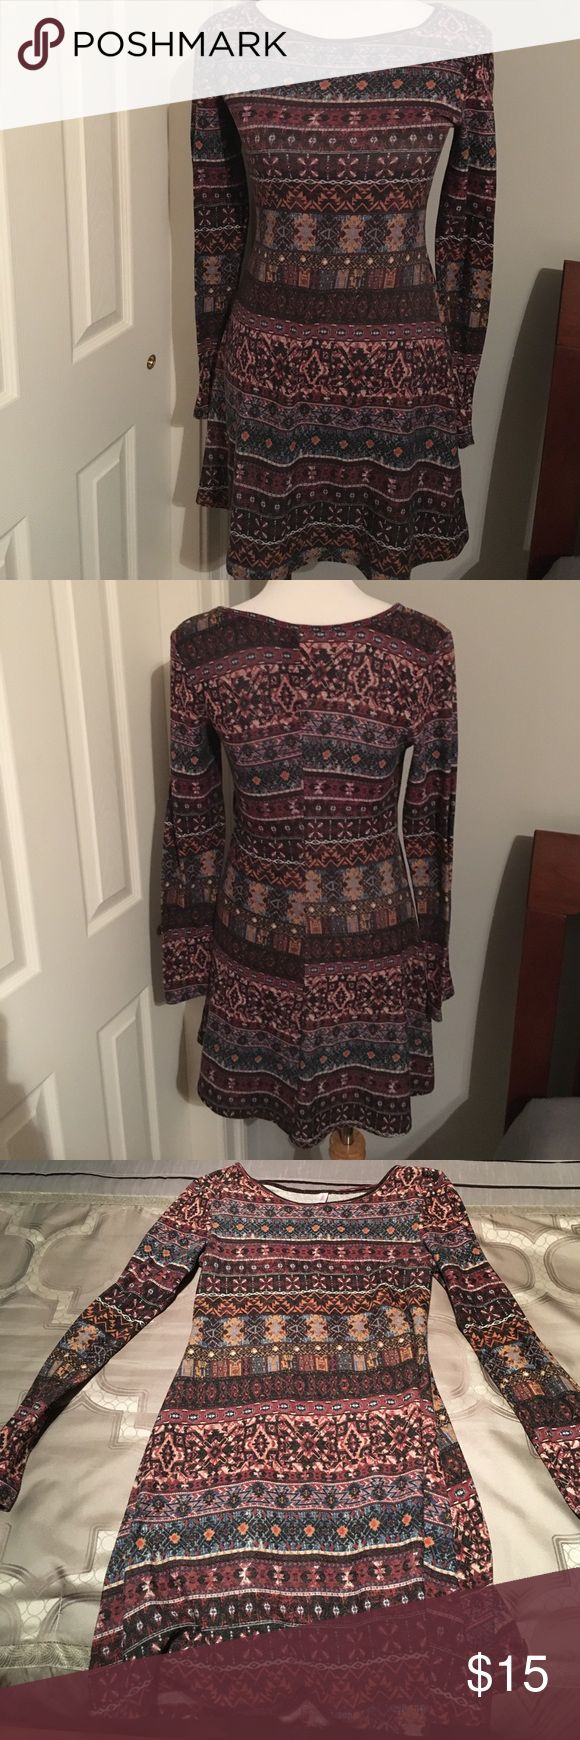 Xhilaration Long Sleeve Aztec Dress Xhilaration long sleeve Aztec pattern dress. Size small. Very gently used. In perfect condition. So soft and flattering on the body. Very true to size. Can easily use for fall, winter, spring, and summer nights. So versatile. Can be easily dressed up or down. 97% polyester 3% spandex Xhilaration Dresses Long Sleeve